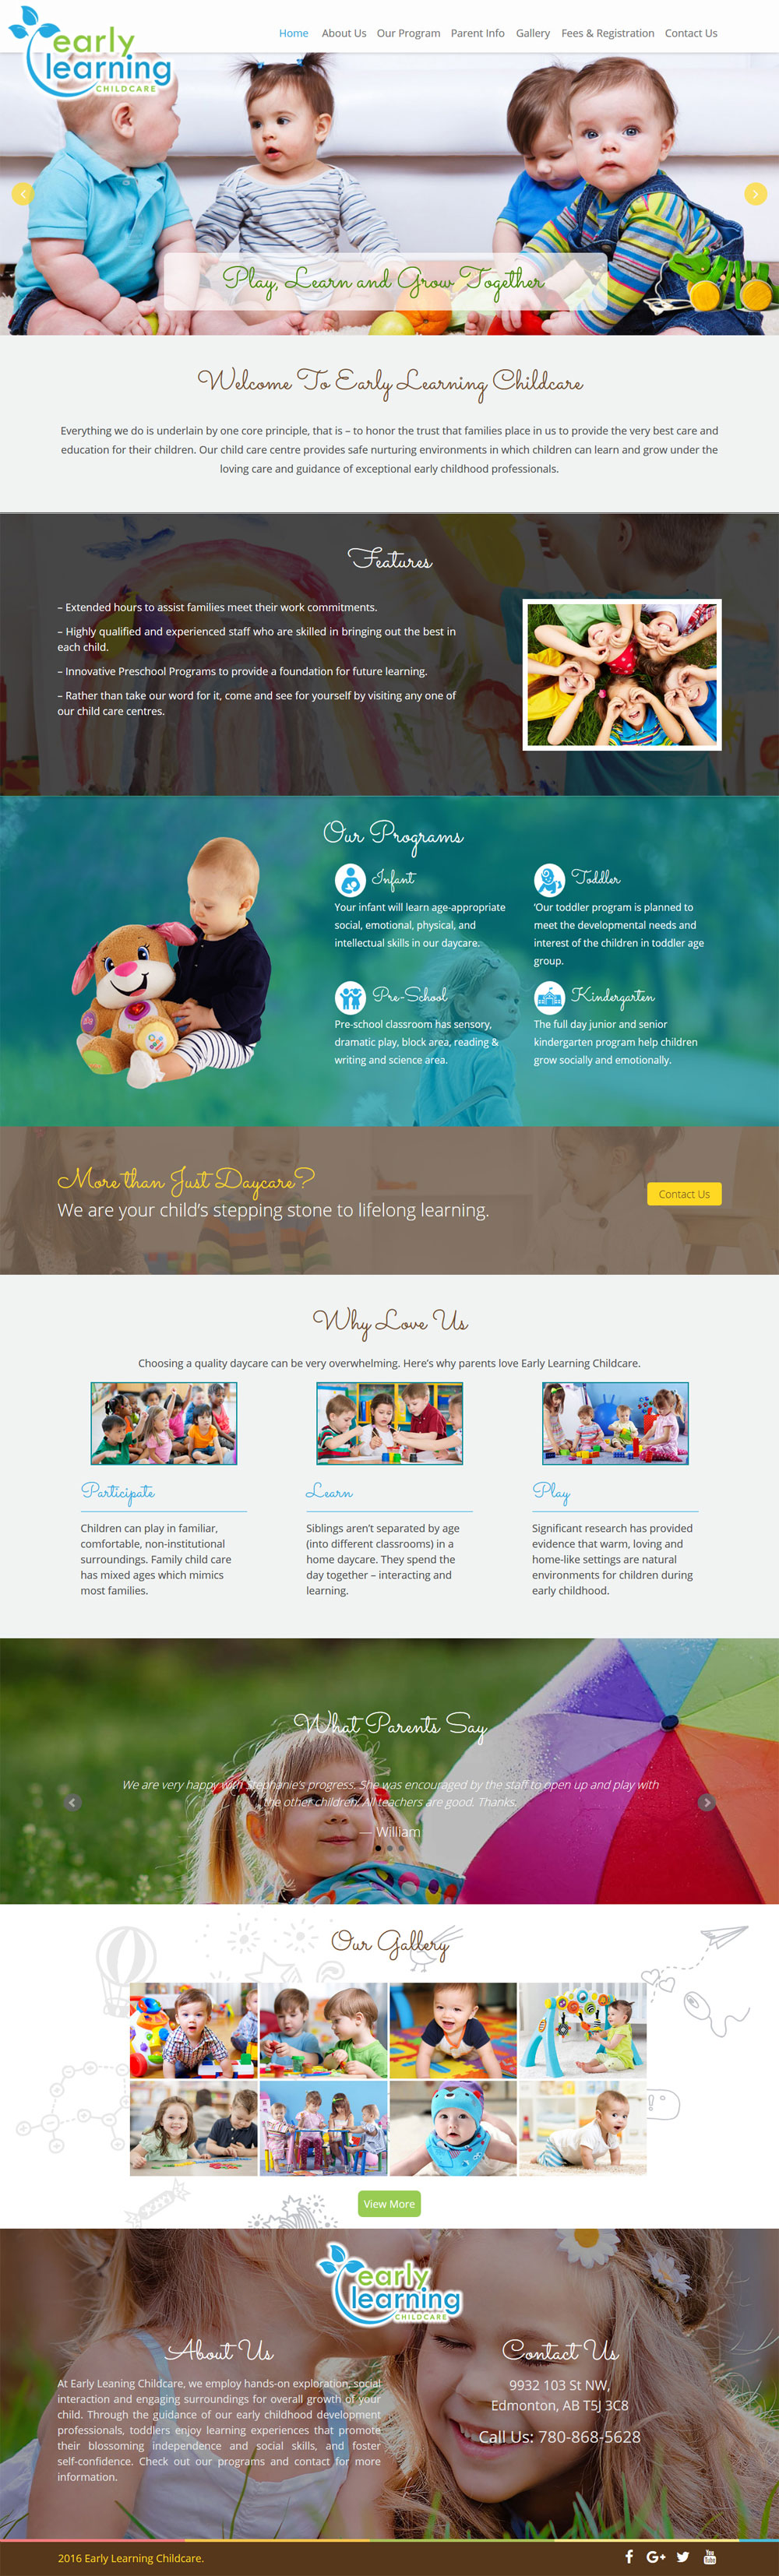 Website Development Company Hamilton